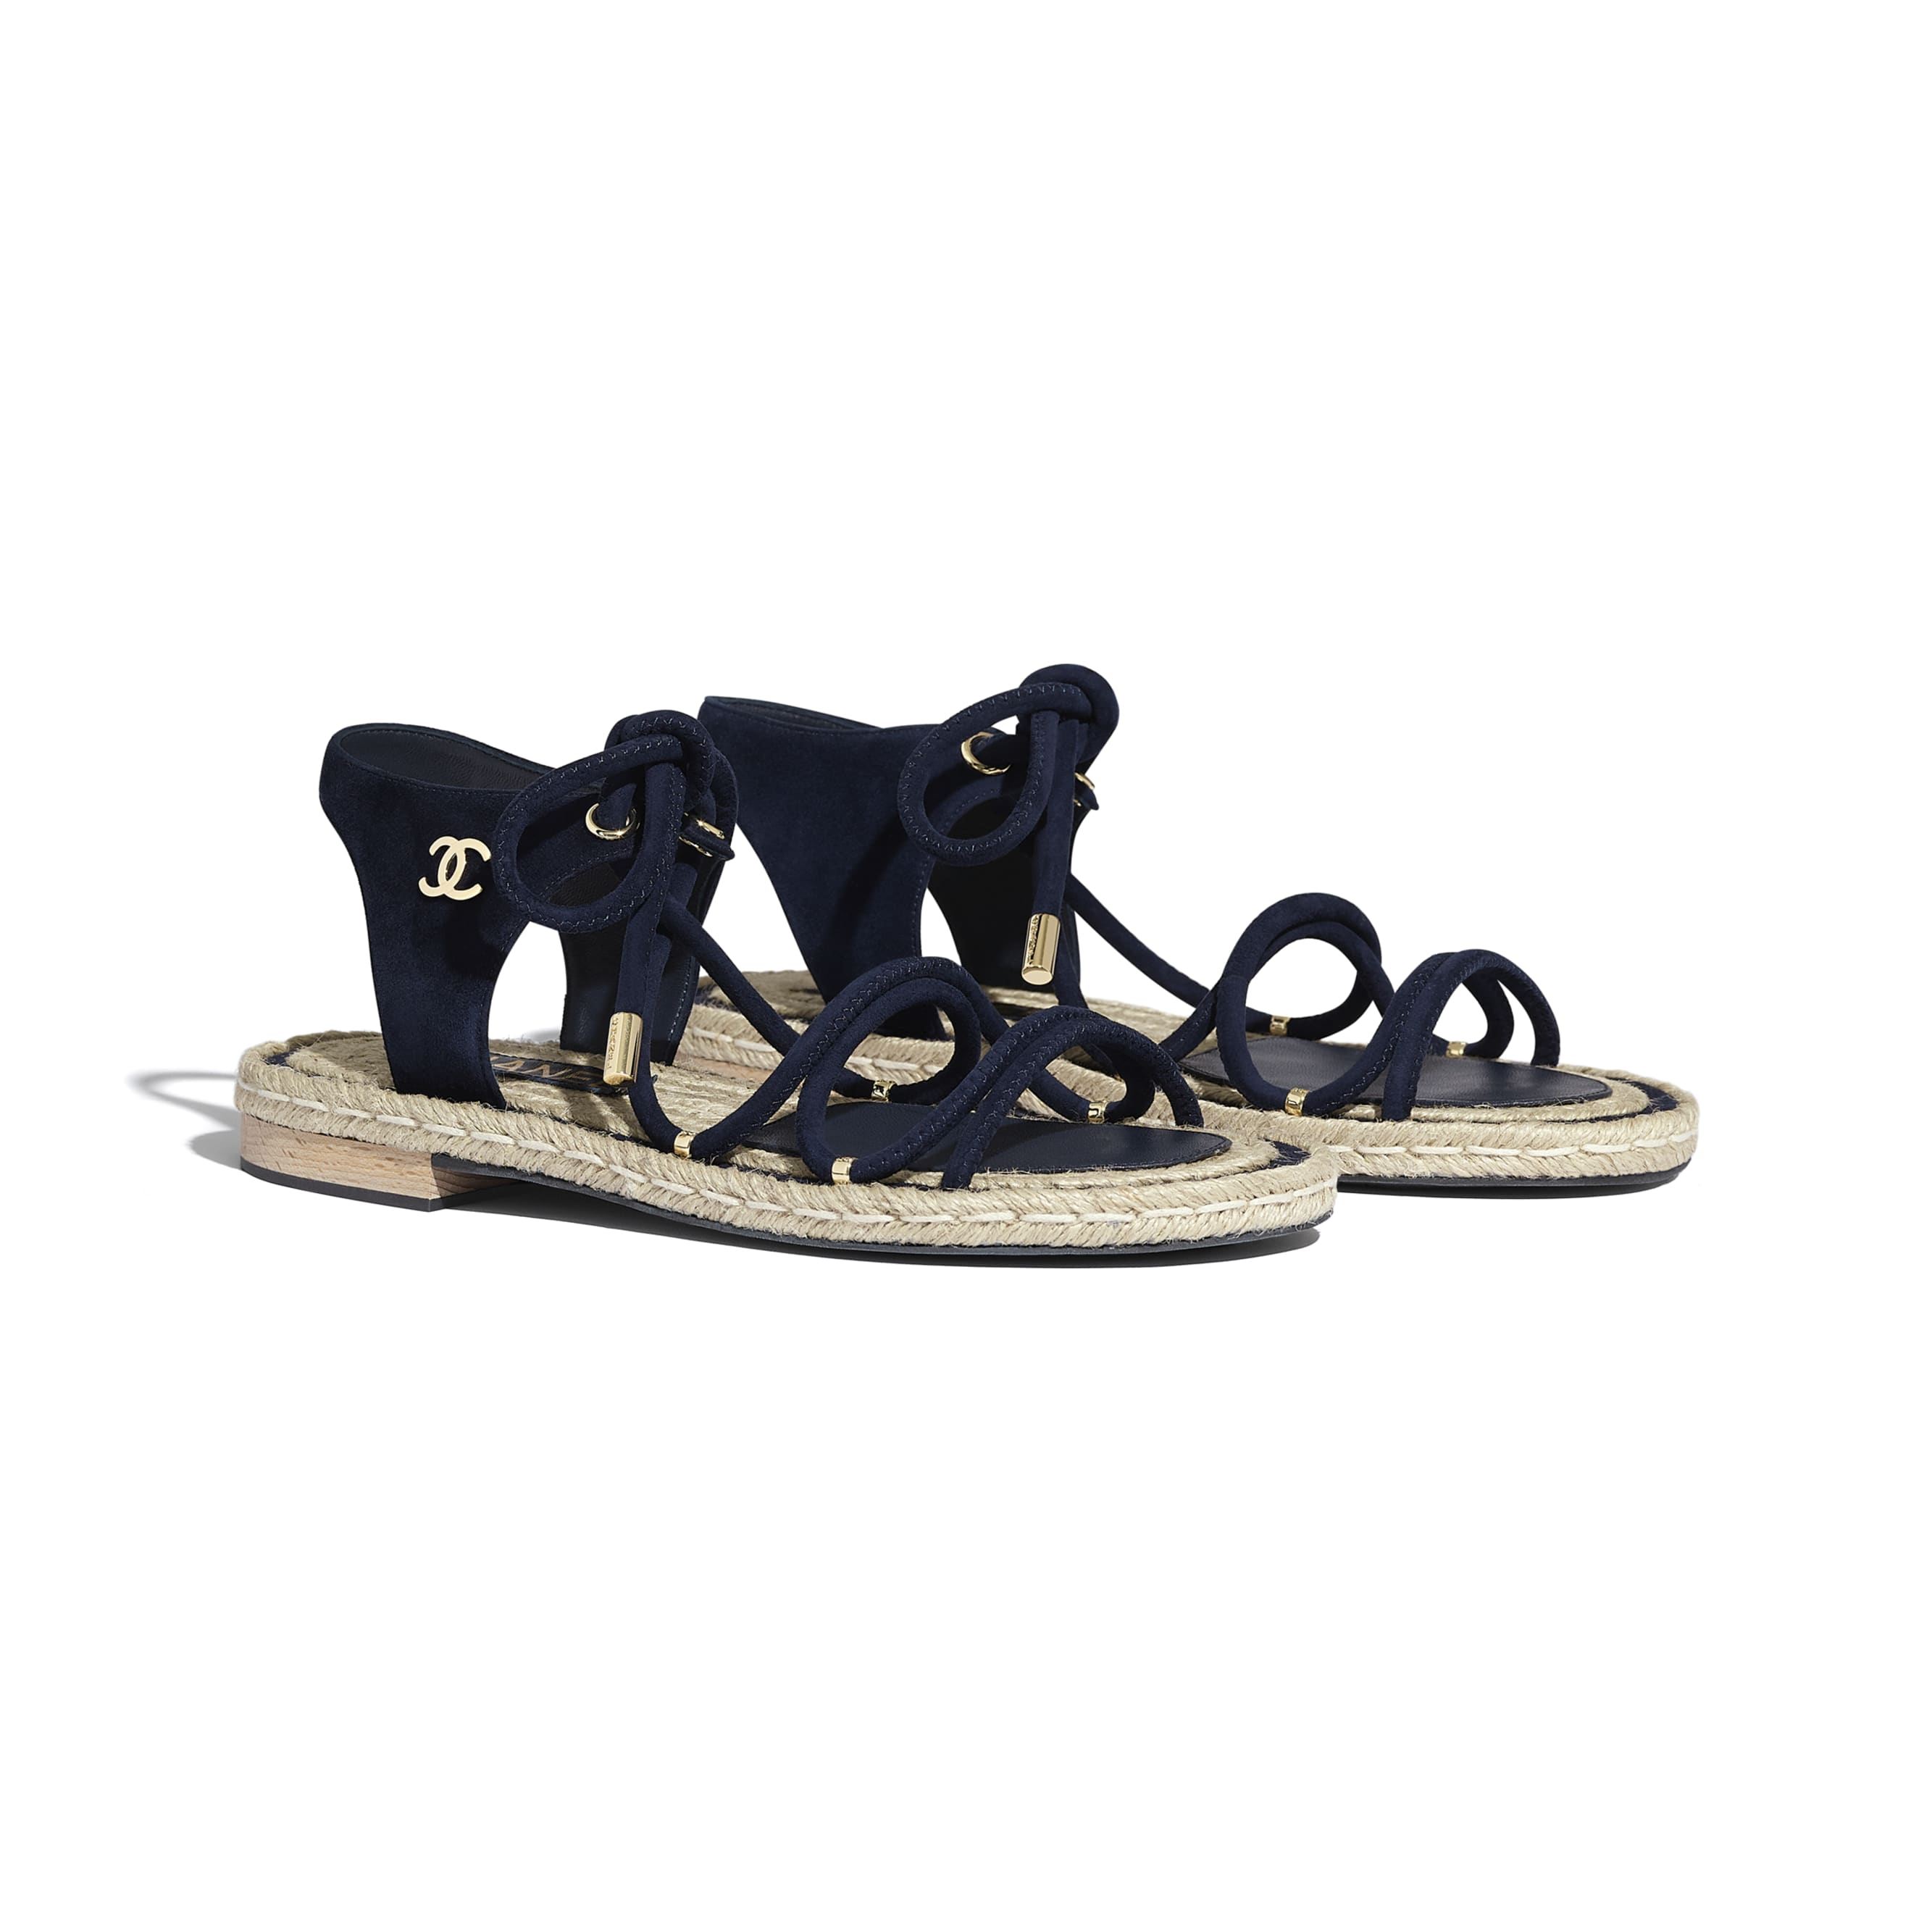 Sandals - Navy Blue - Suede Kidskin - CHANEL - Alternative view - see standard sized version